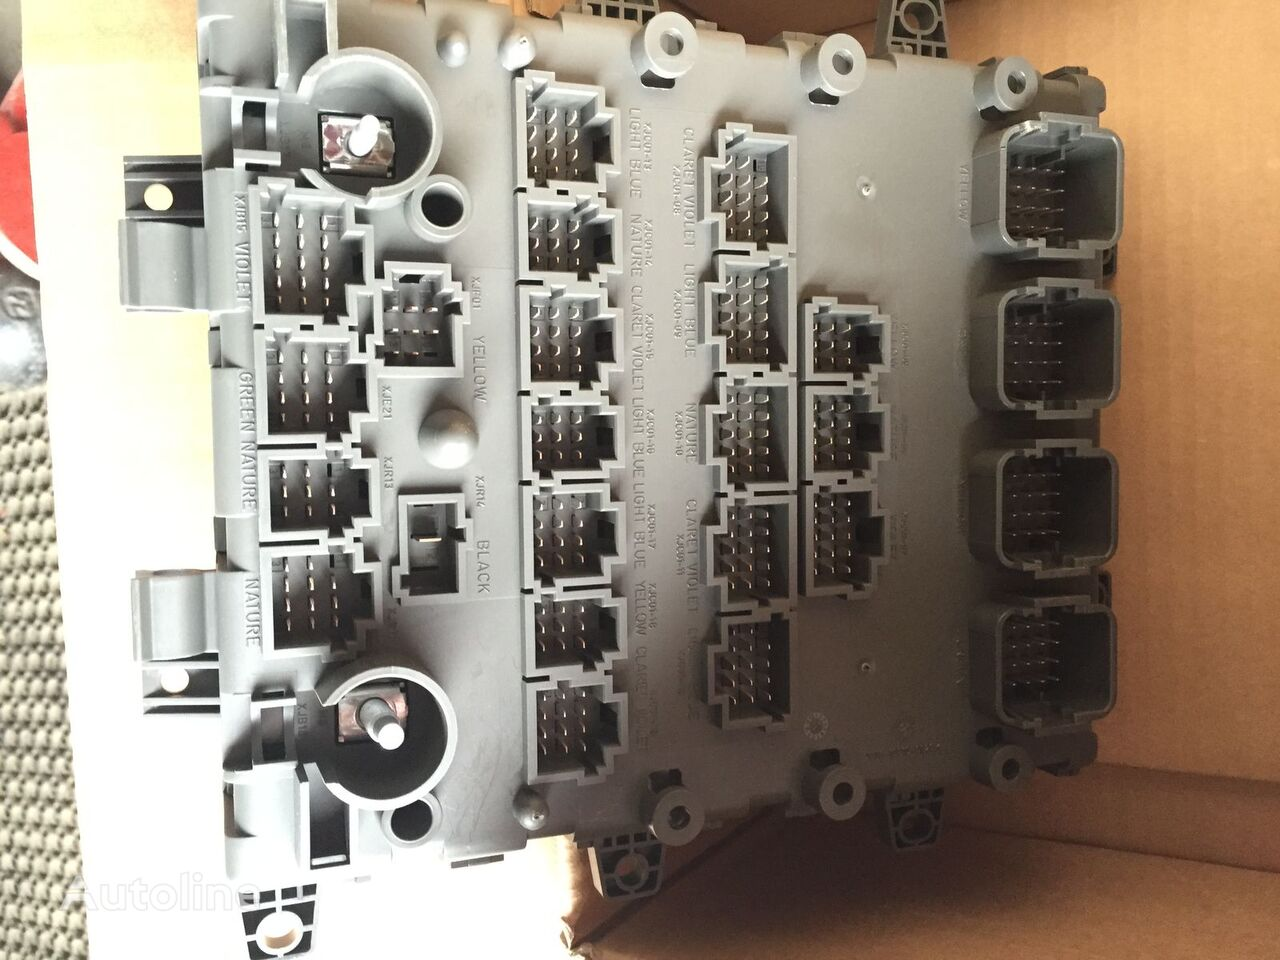 Remarkable Volvo Fh 480 Fuse Box Auto Electrical Wiring Diagram Wiring Cloud Oideiuggs Outletorg